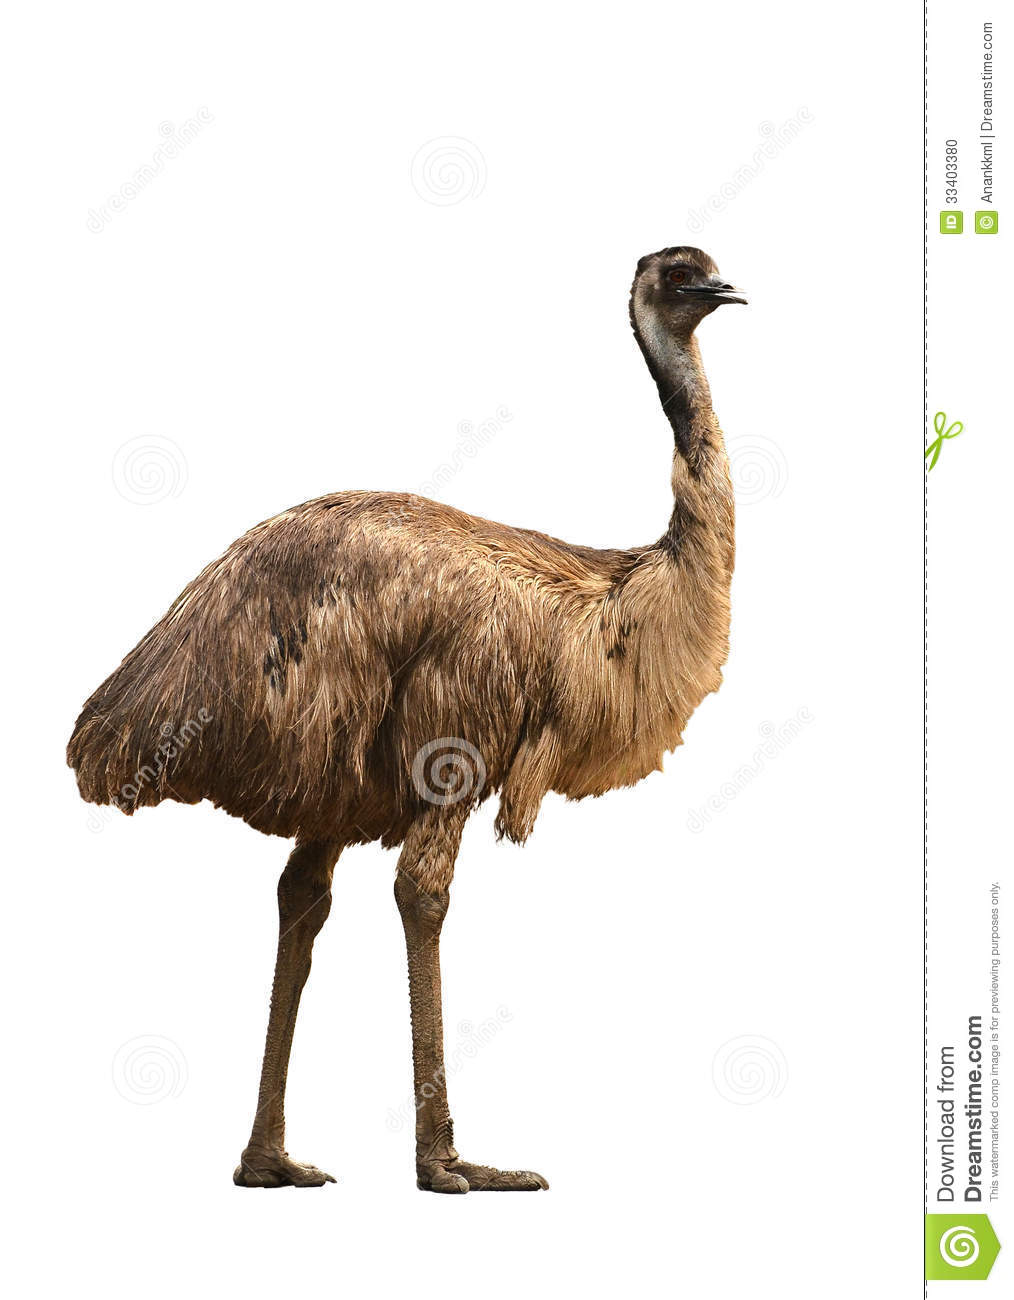 Emu Isolated On White Background Stock Photo - Image: 33403380